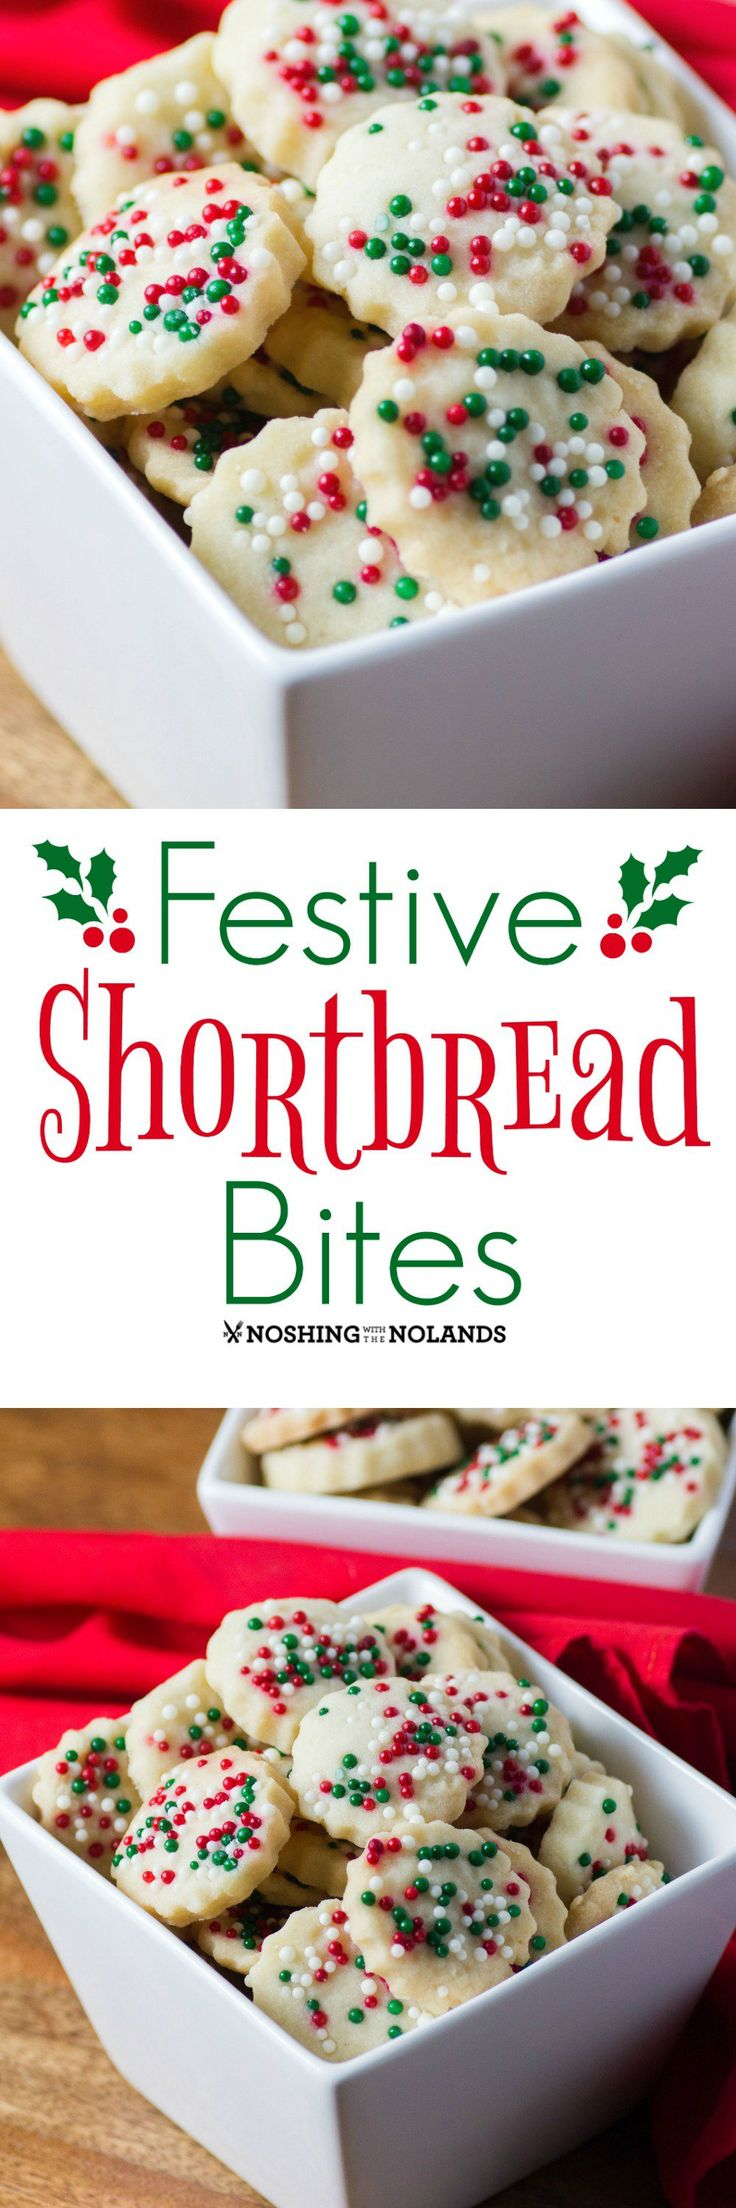 Festive Shortbread Bites by Noshing With The Nolands are melt in your mouth delicious and perfect for the holidays! You won't be able to stop at just one!